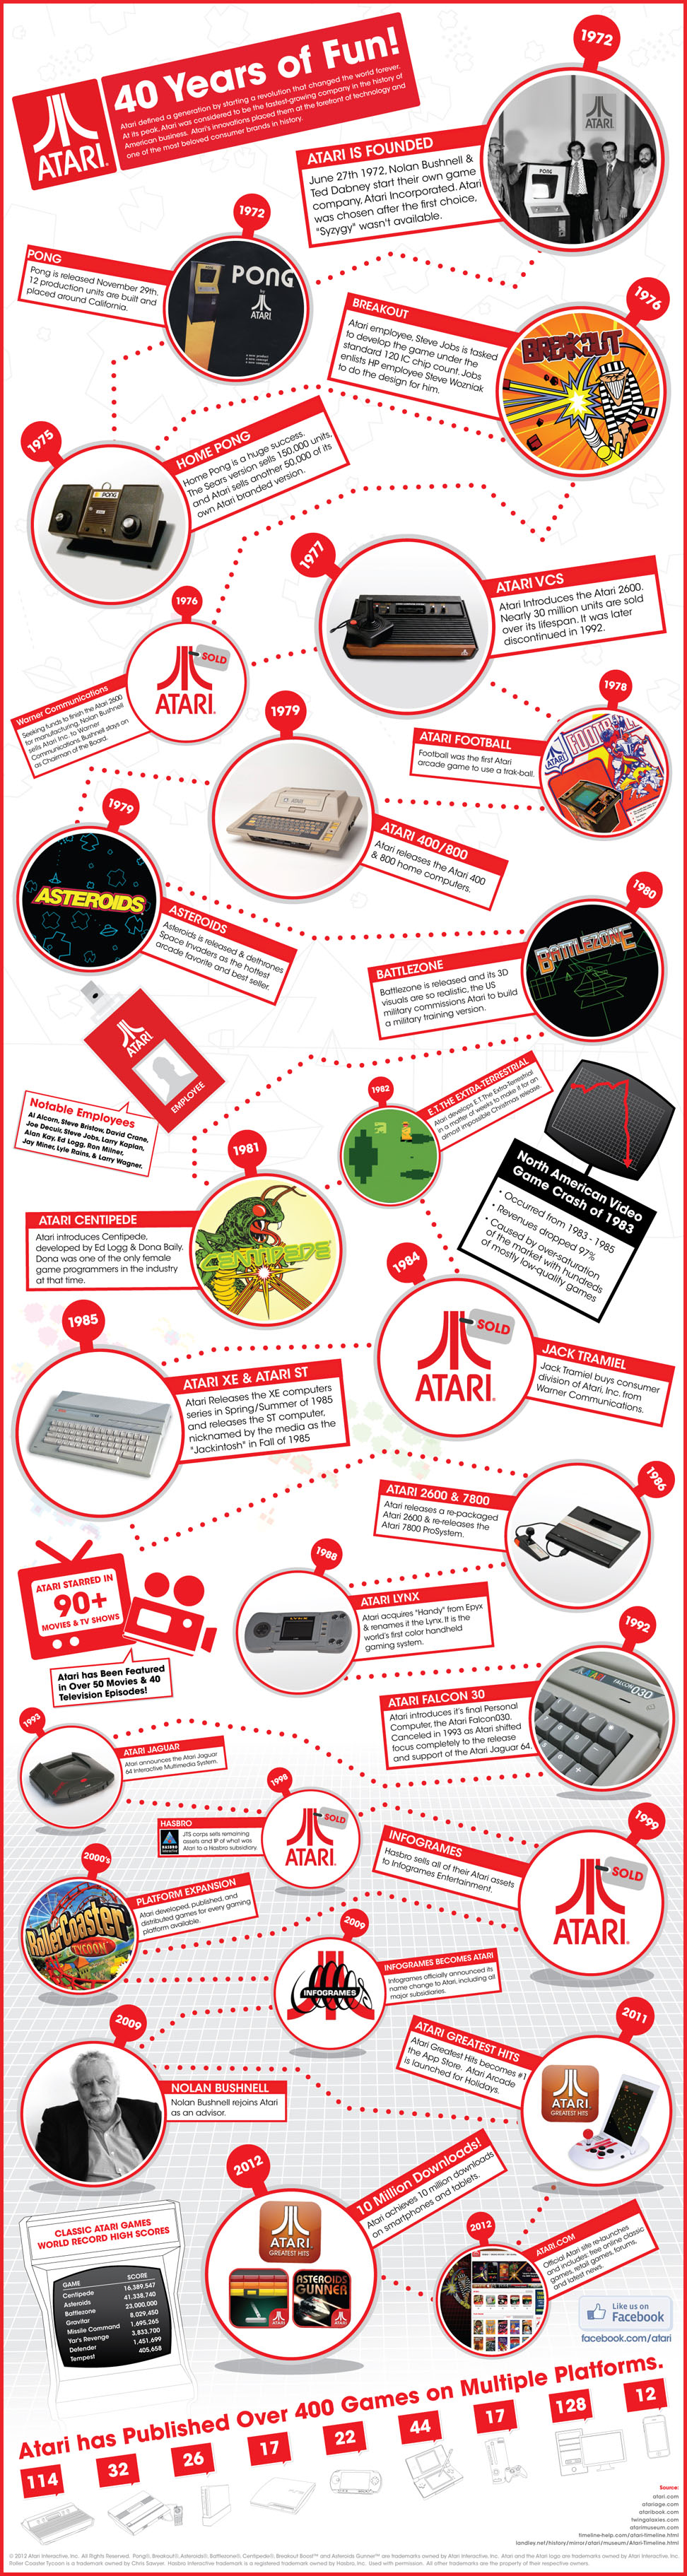 Atari: 40 Years of Fun!